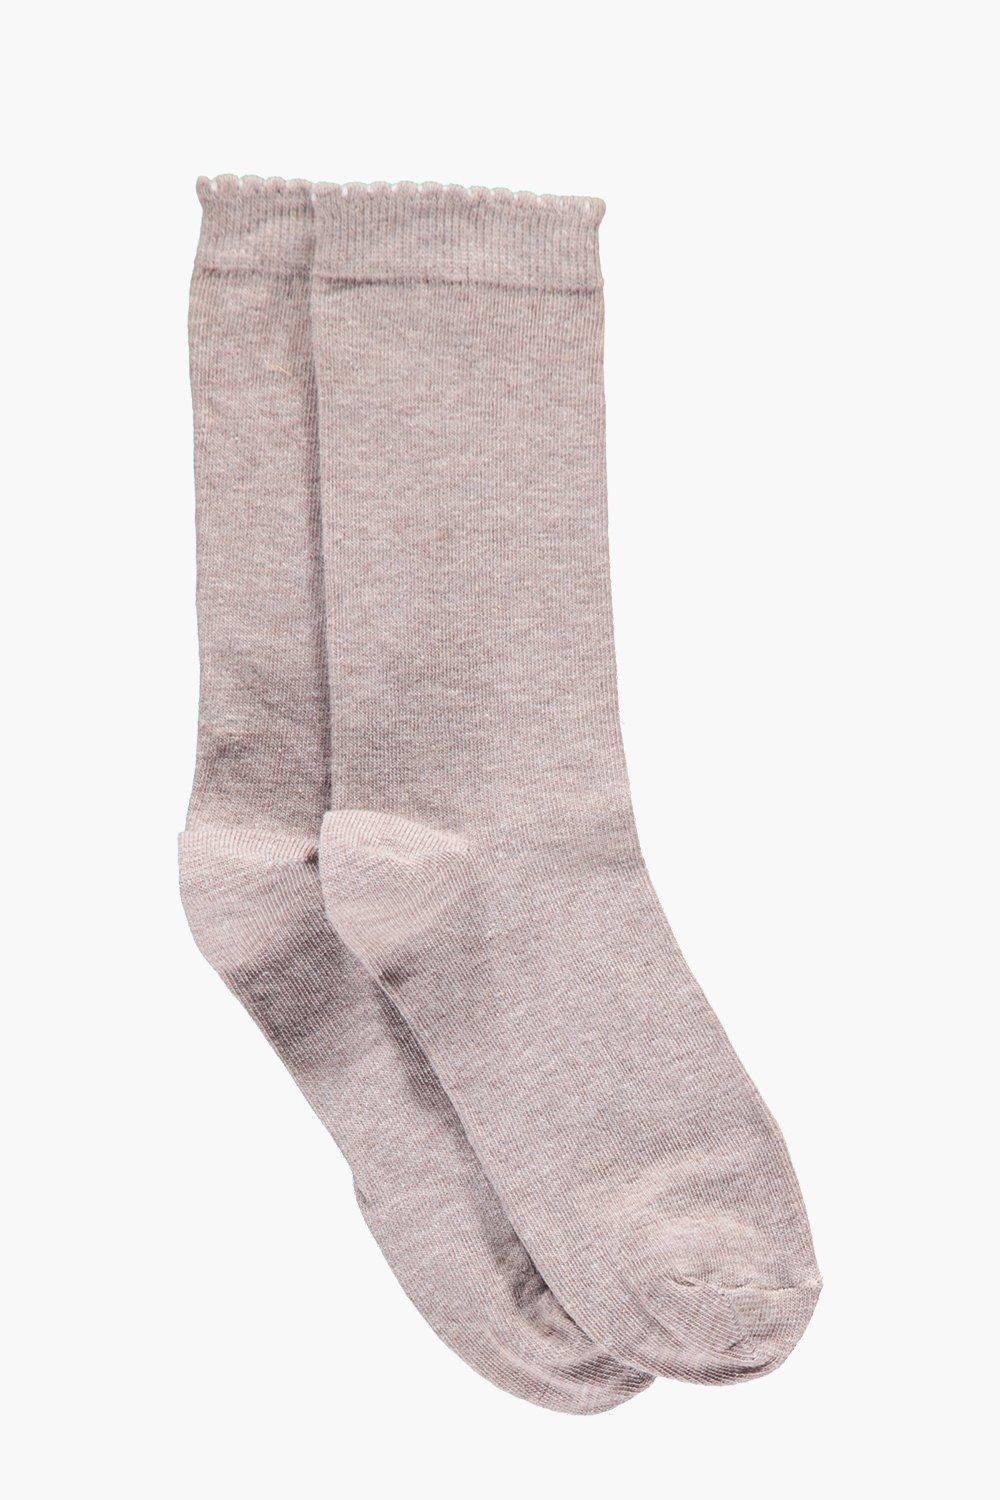 Amber Melange Scallop Edge Ankle Socks